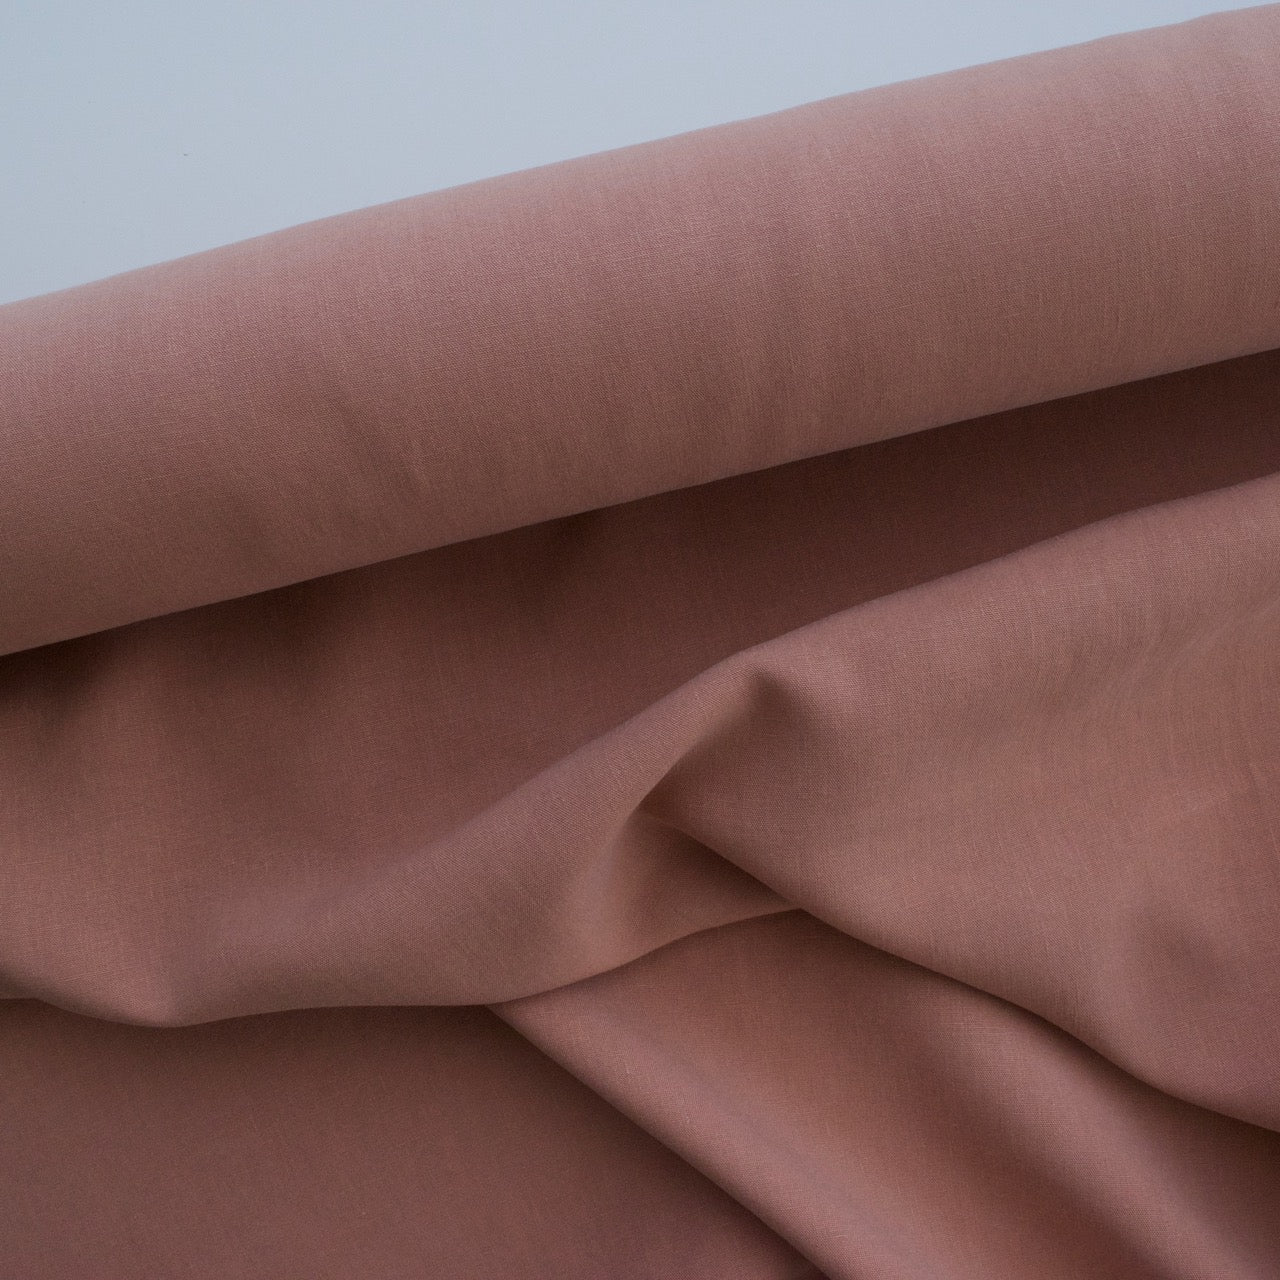 Tencel Linen - Blush Pink - MaaiDesign